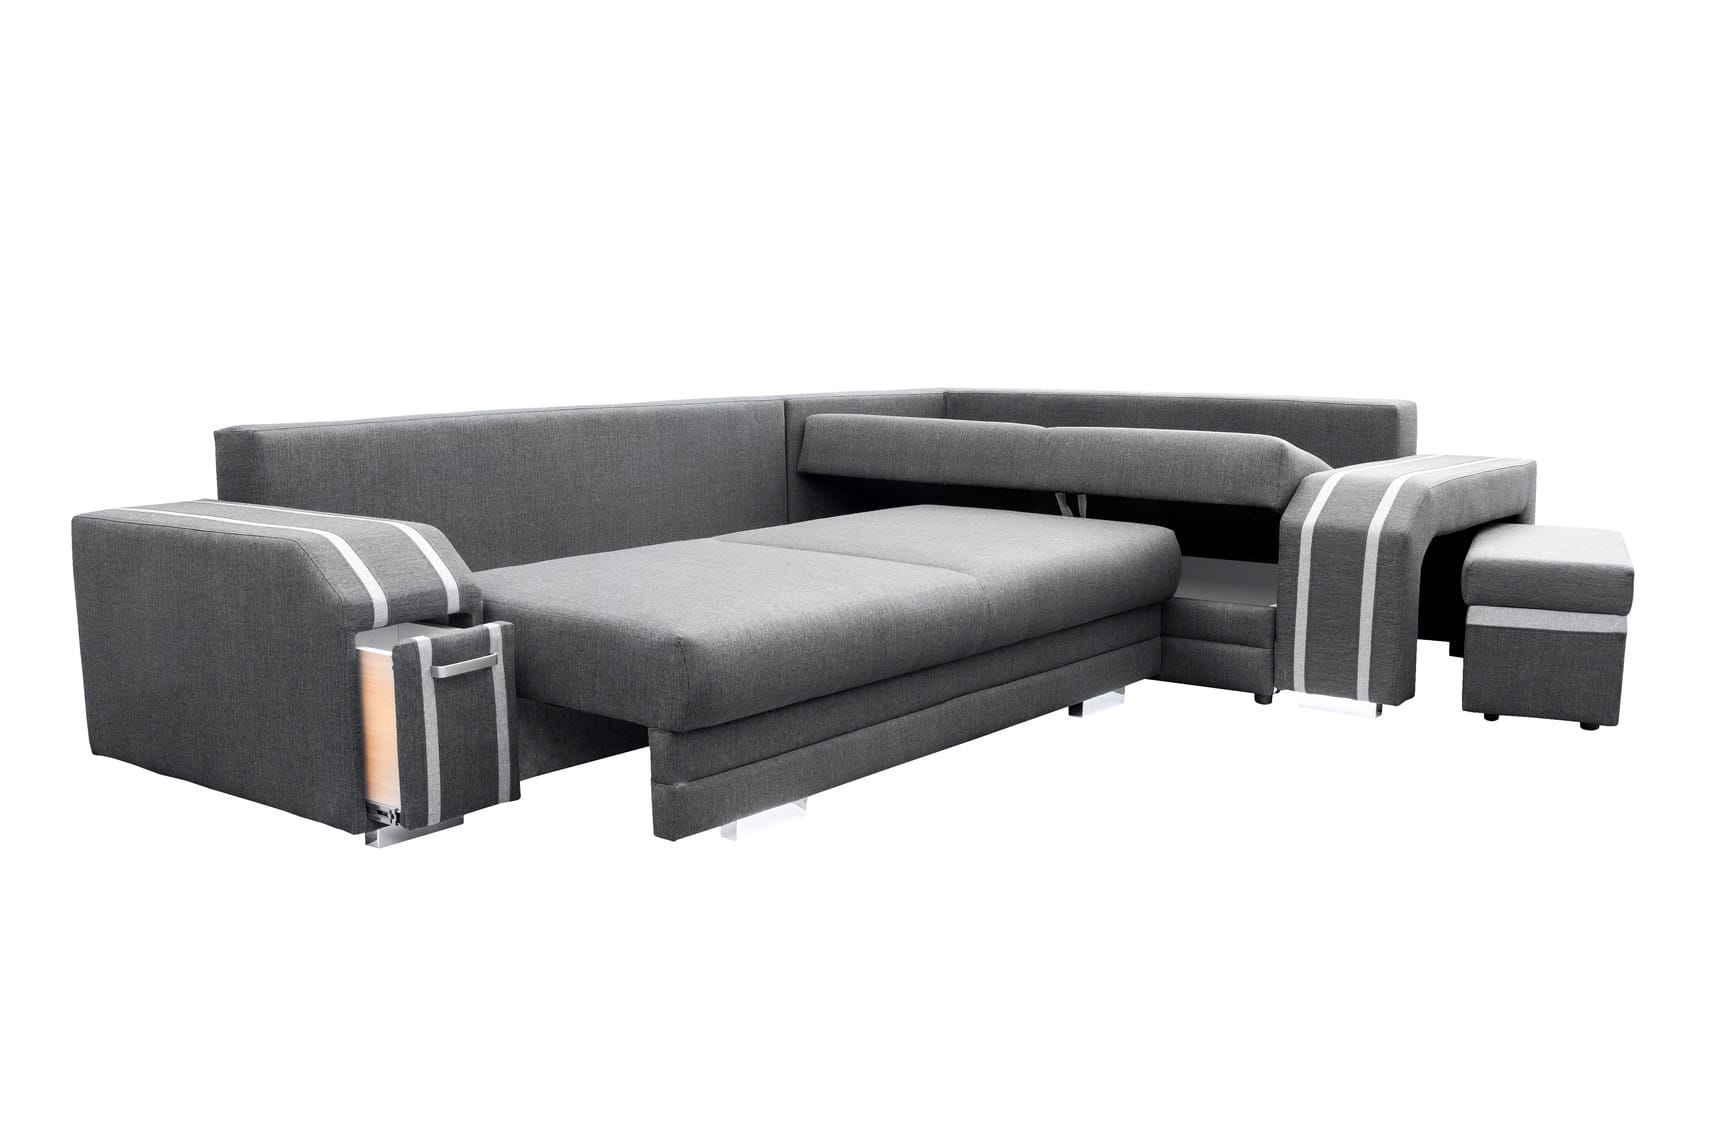 wohnlandschaft eckgarnitur sofa andreas mit schlaffunktion bettkasten und hocker ebay. Black Bedroom Furniture Sets. Home Design Ideas